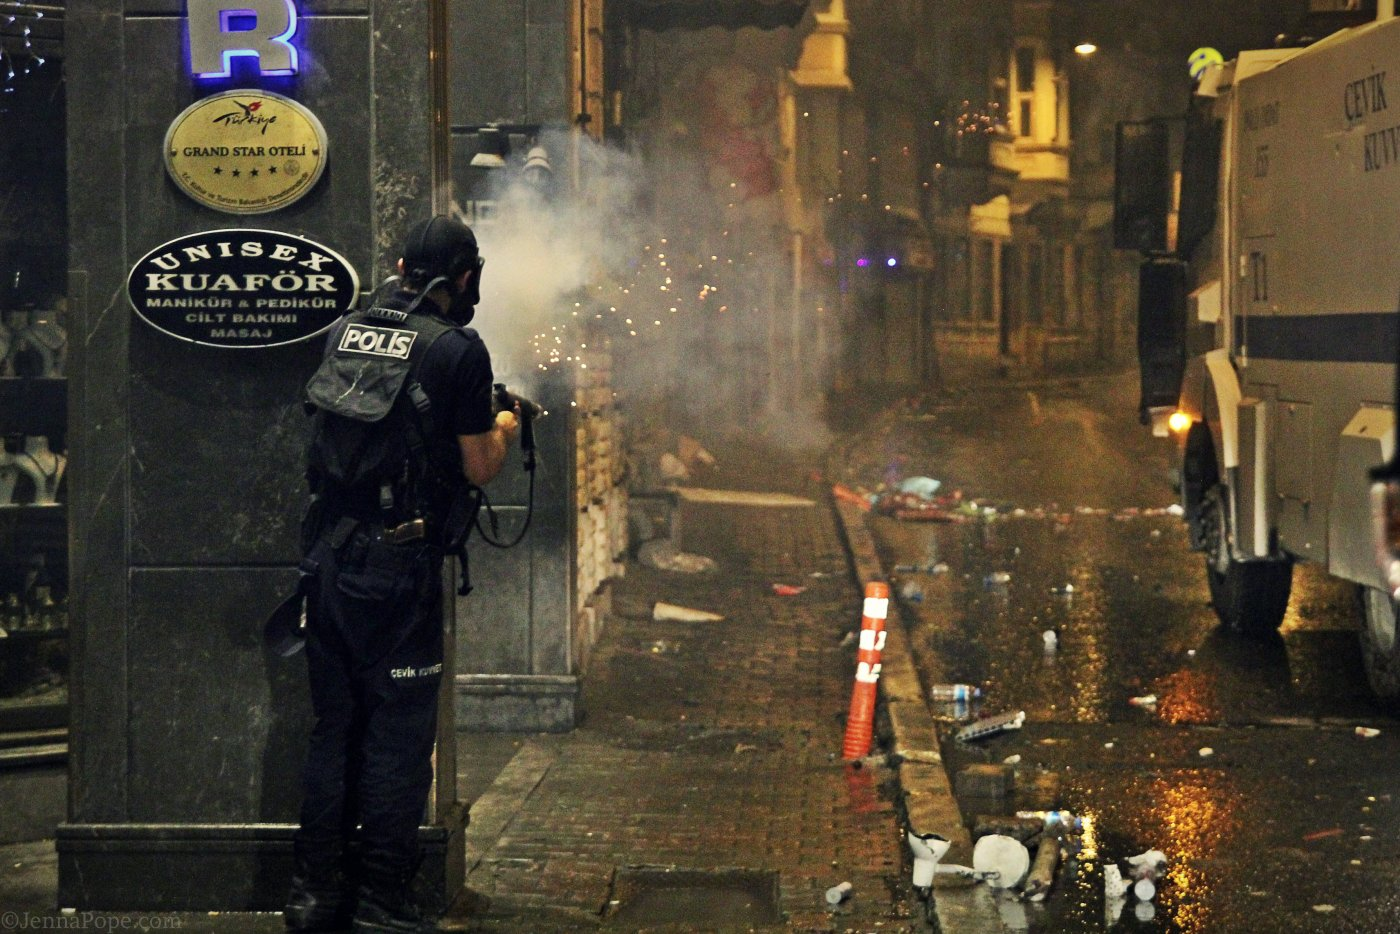 A police officer firing tear down the street towards protestors.